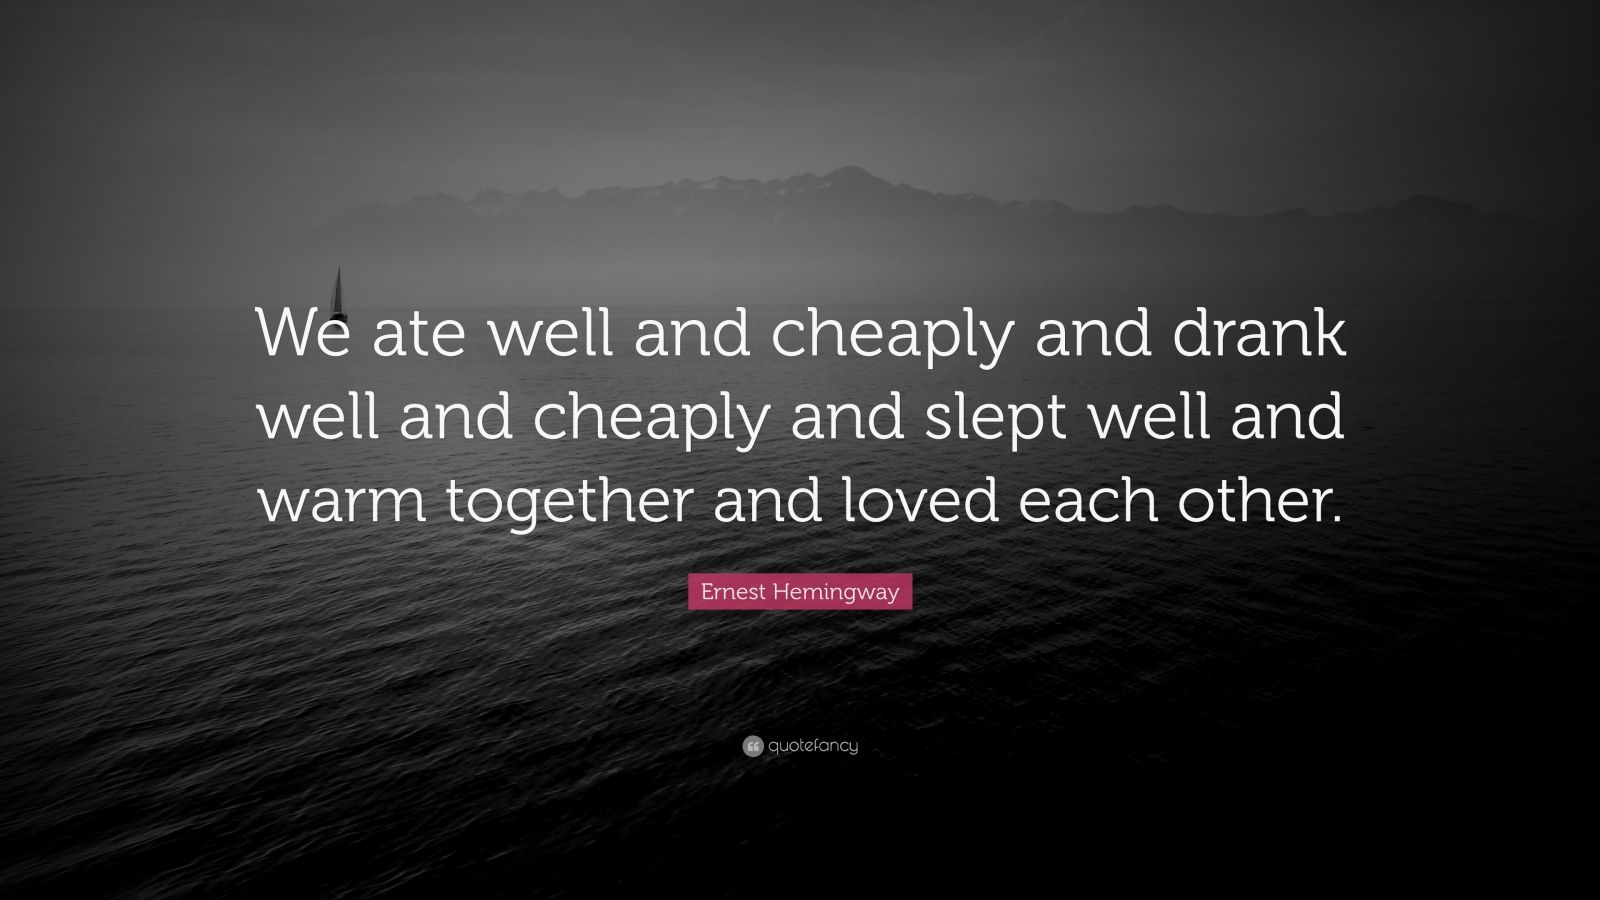 """Ernest Hemingway Quote: """"We ate well and cheaply and drank well and cheaply and slept well and warm together and loved each other."""""""